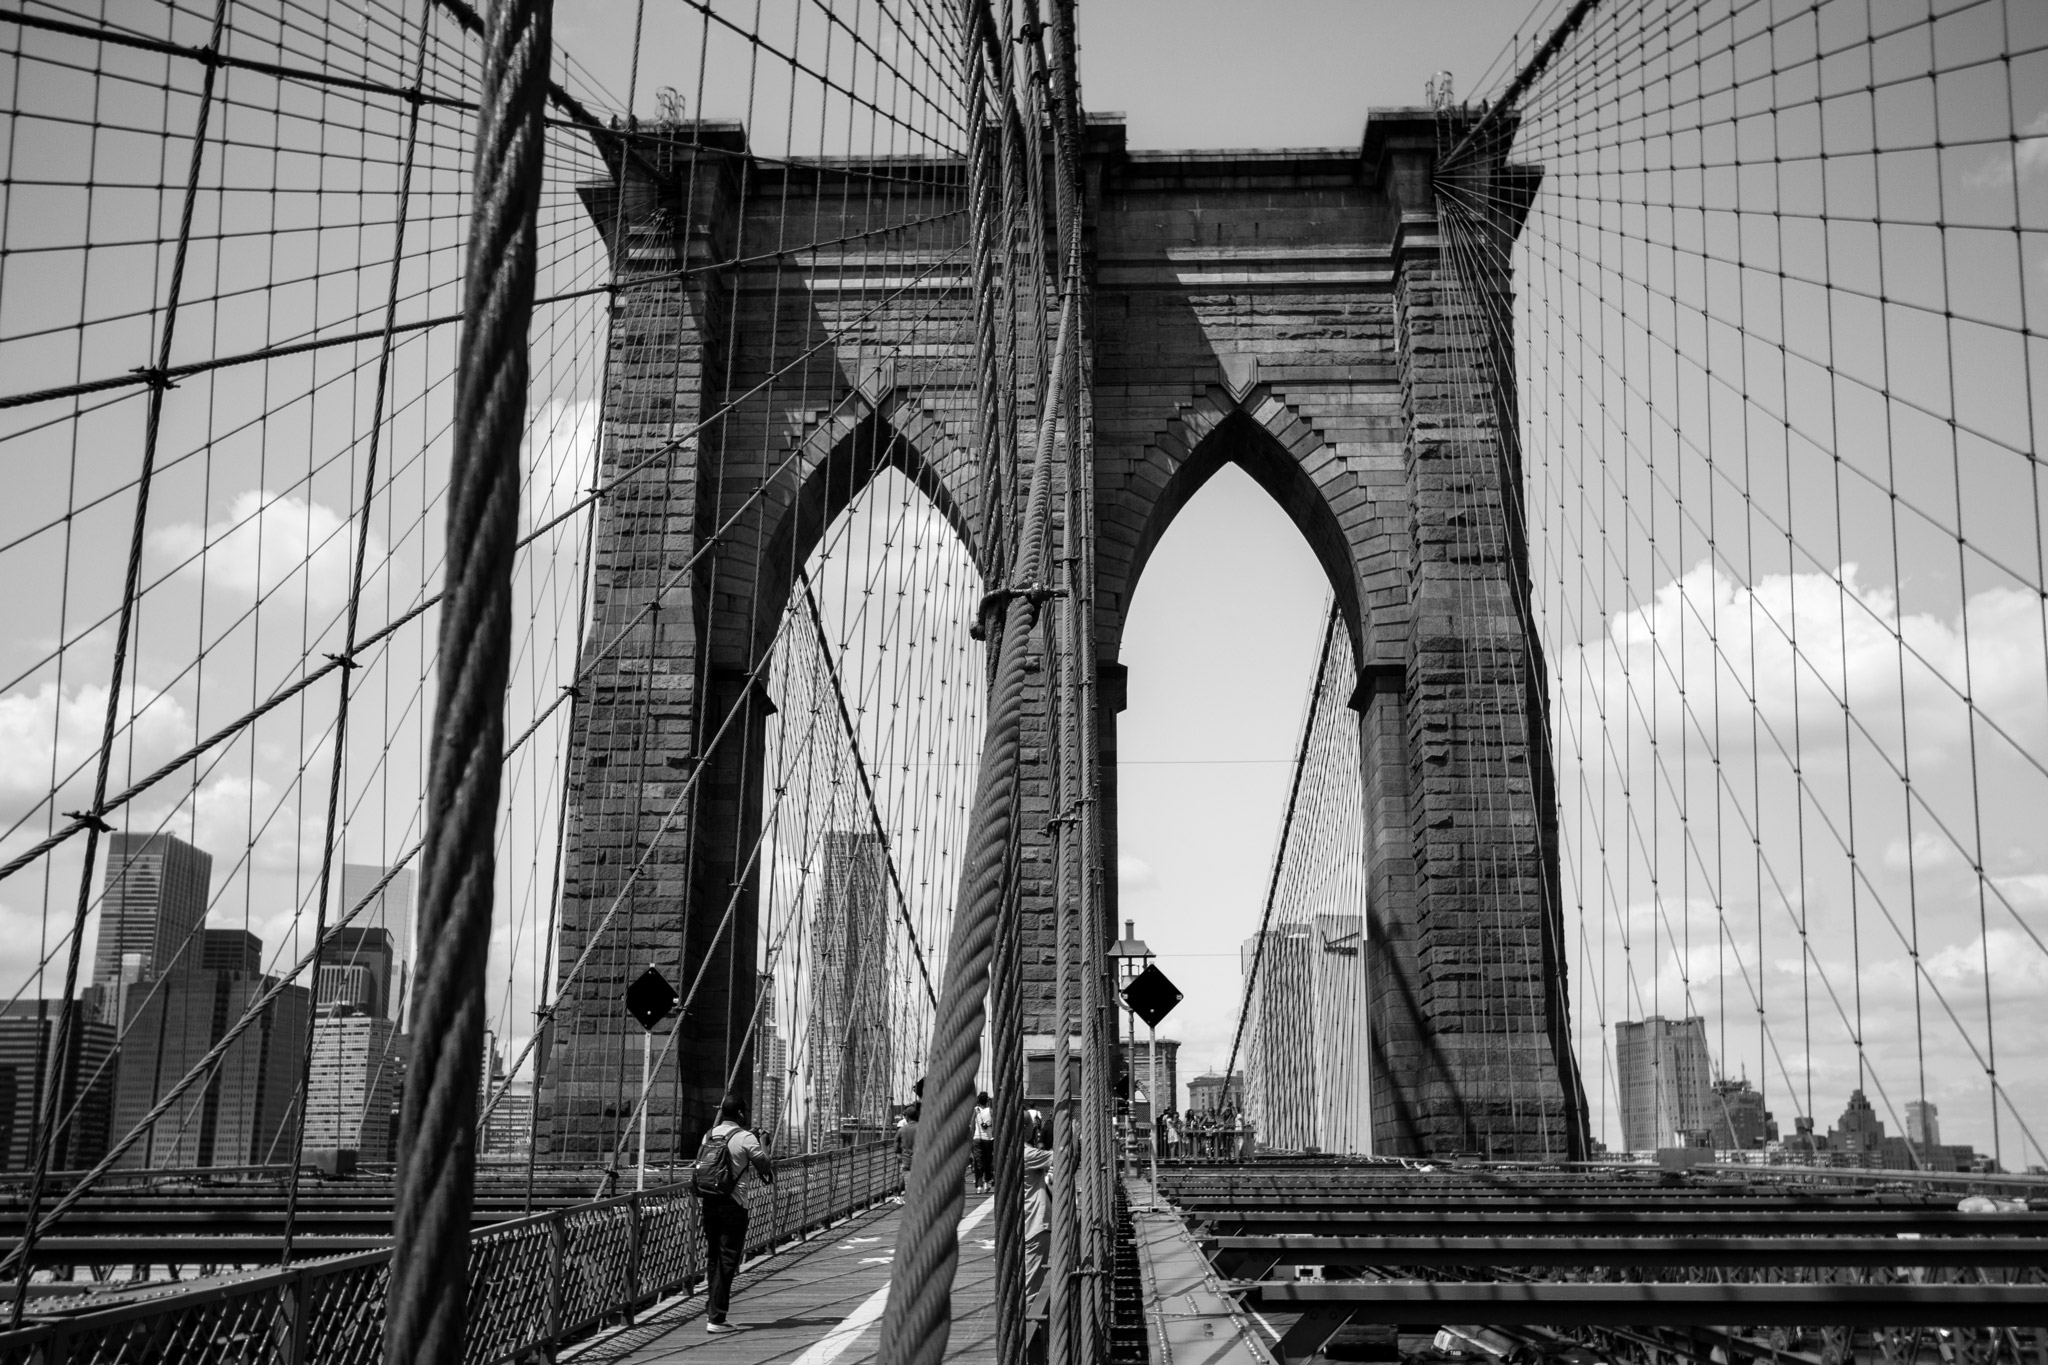 Brooklyn Bridge (Foto: Andreas Ochsenkühn)